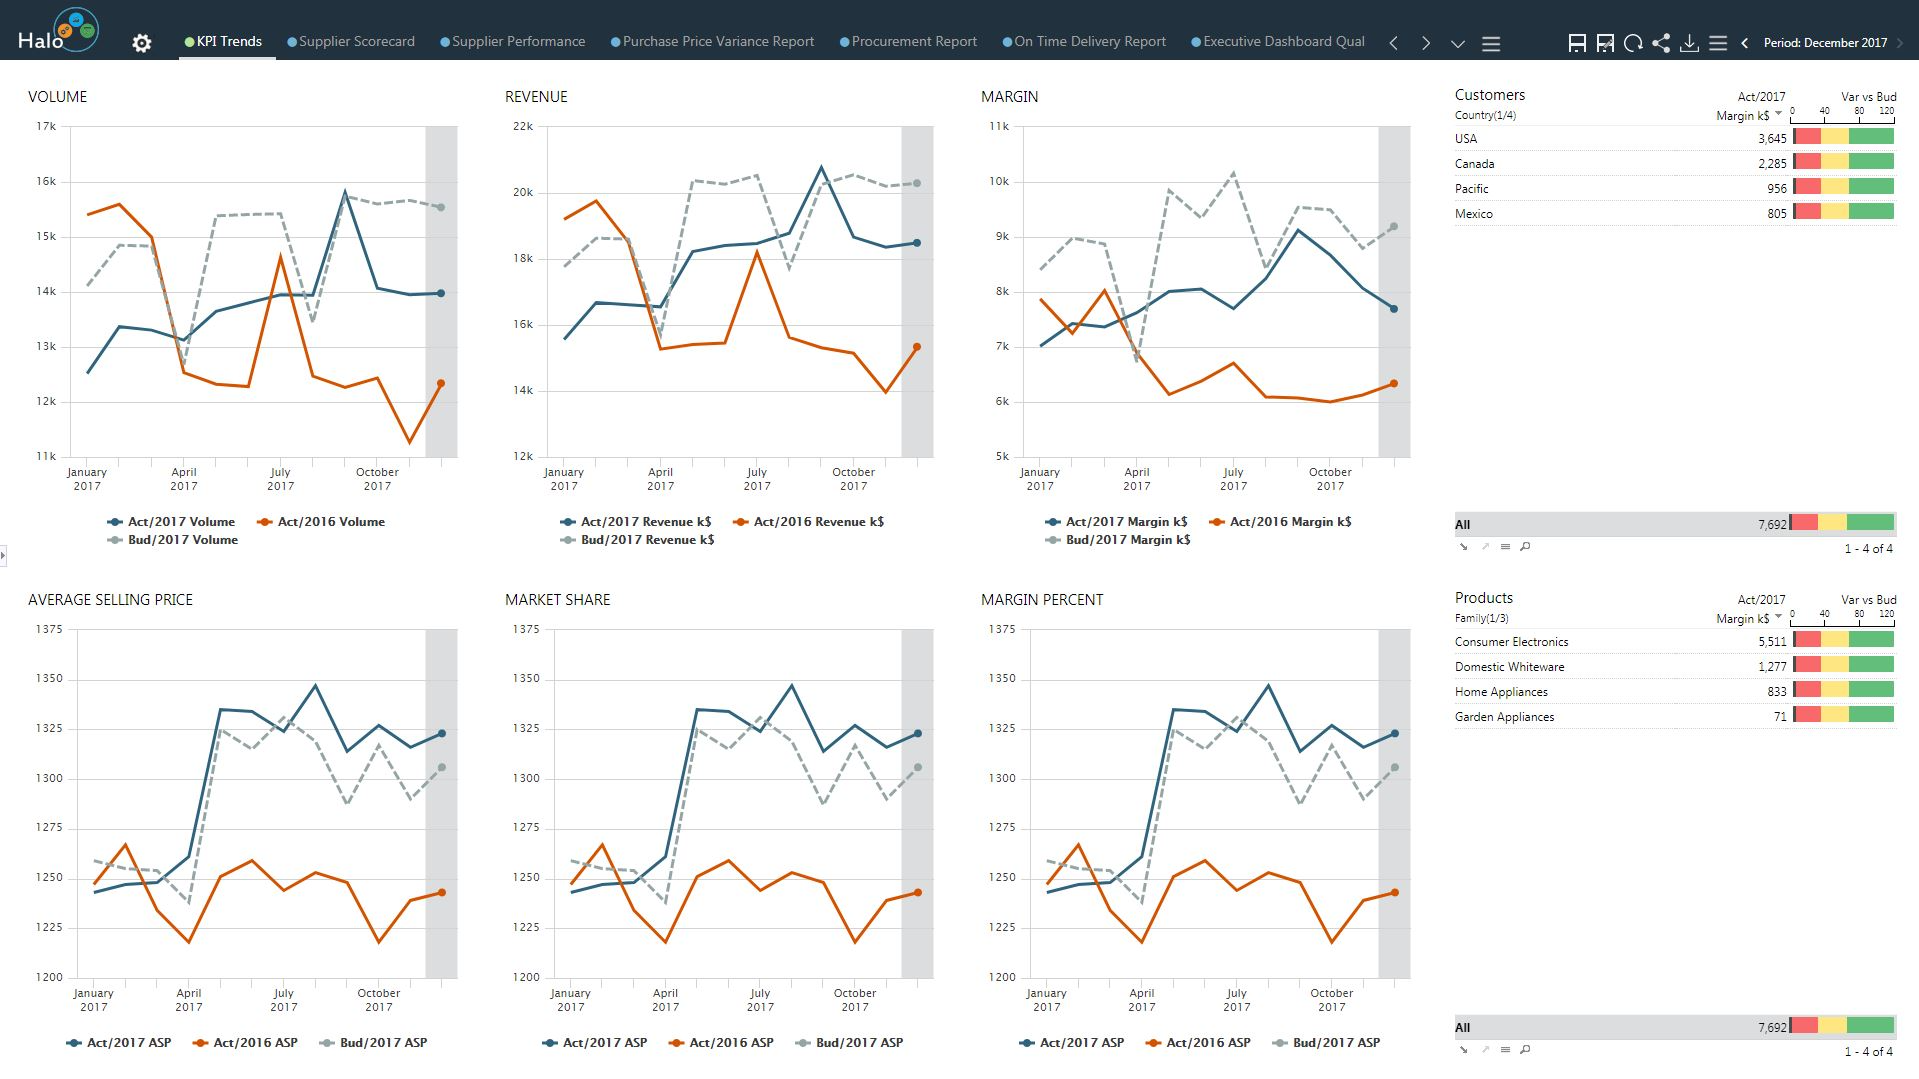 Halo automatically highlights trends in the data